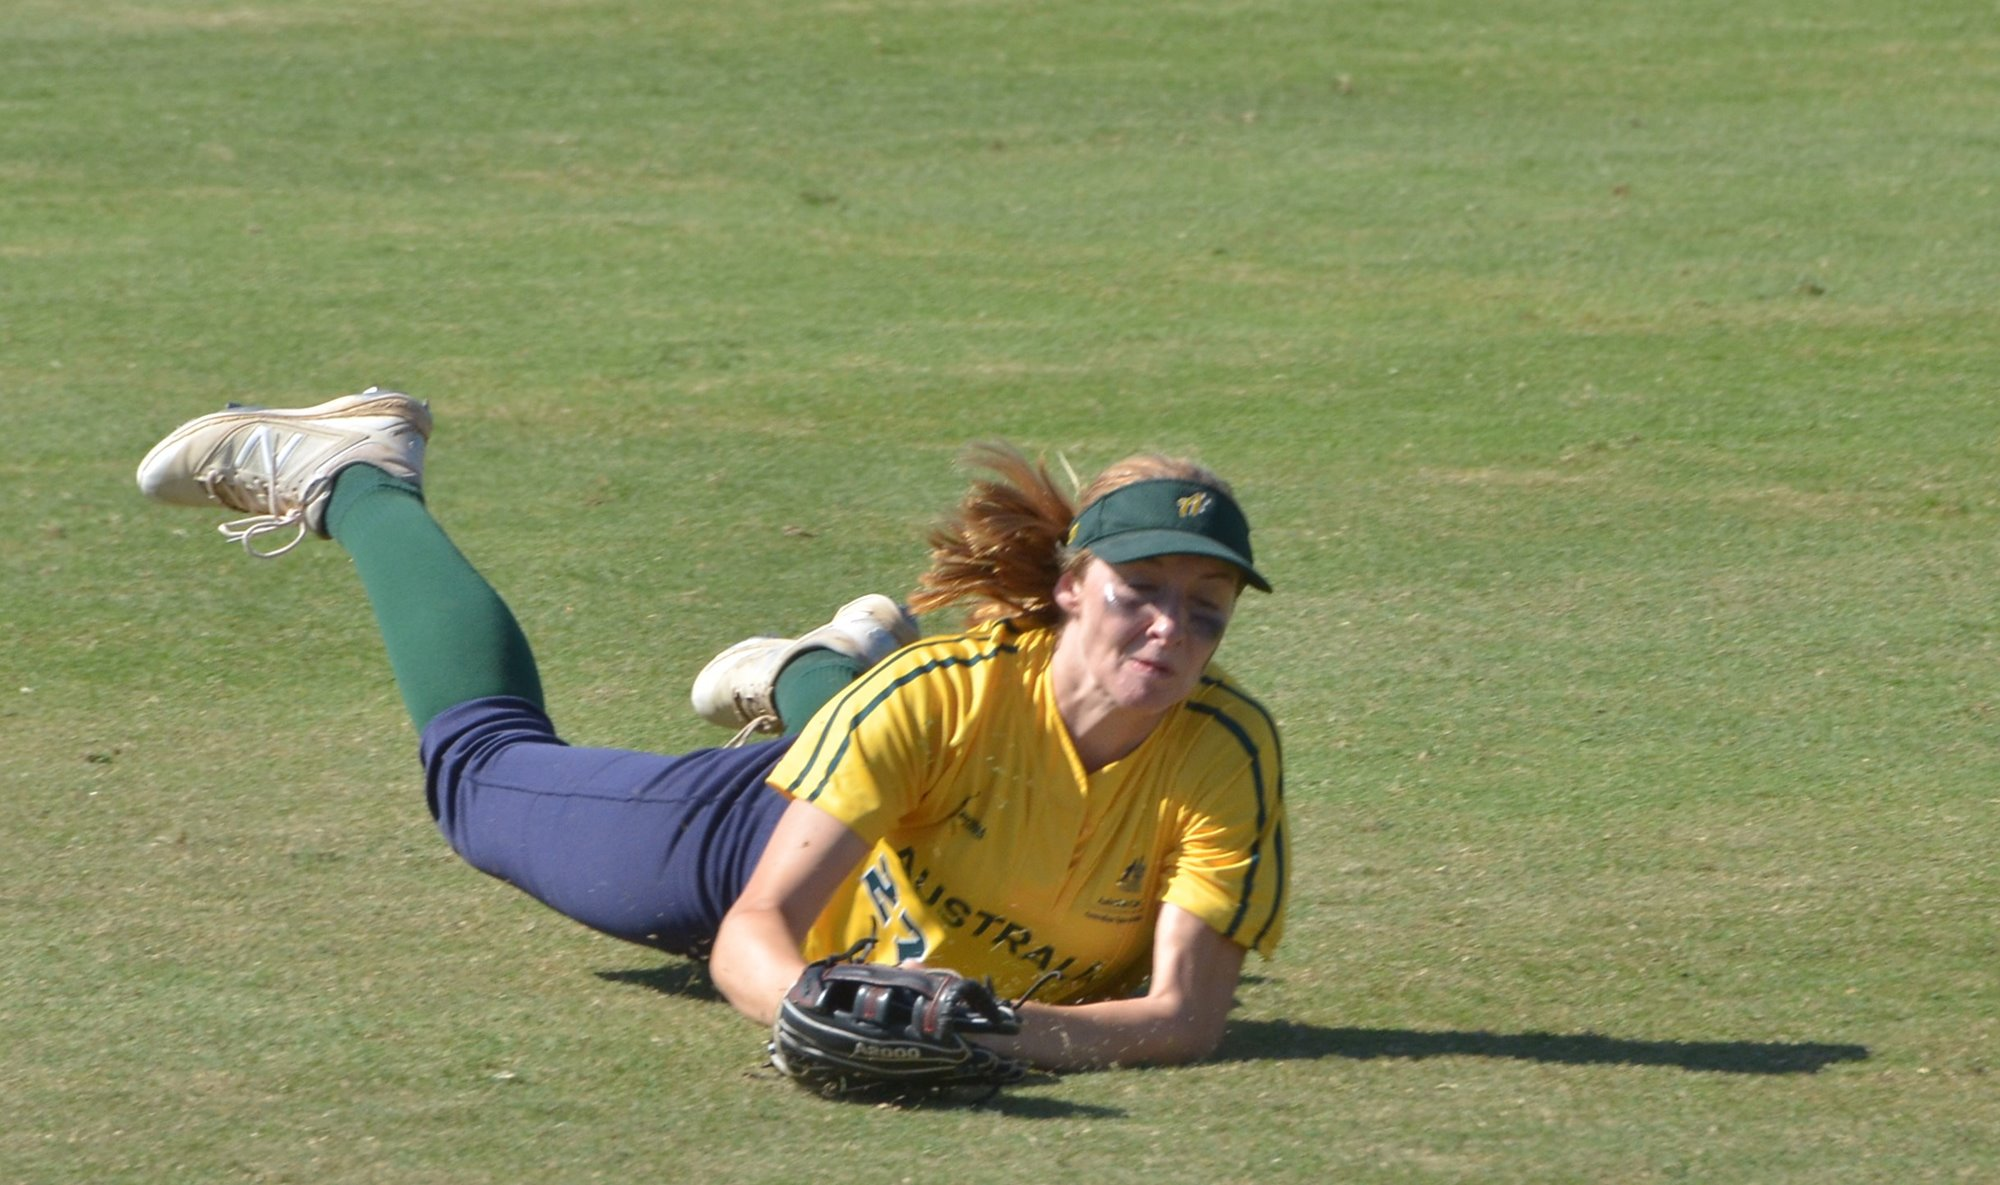 A superb diving catch by Pippa Adkins